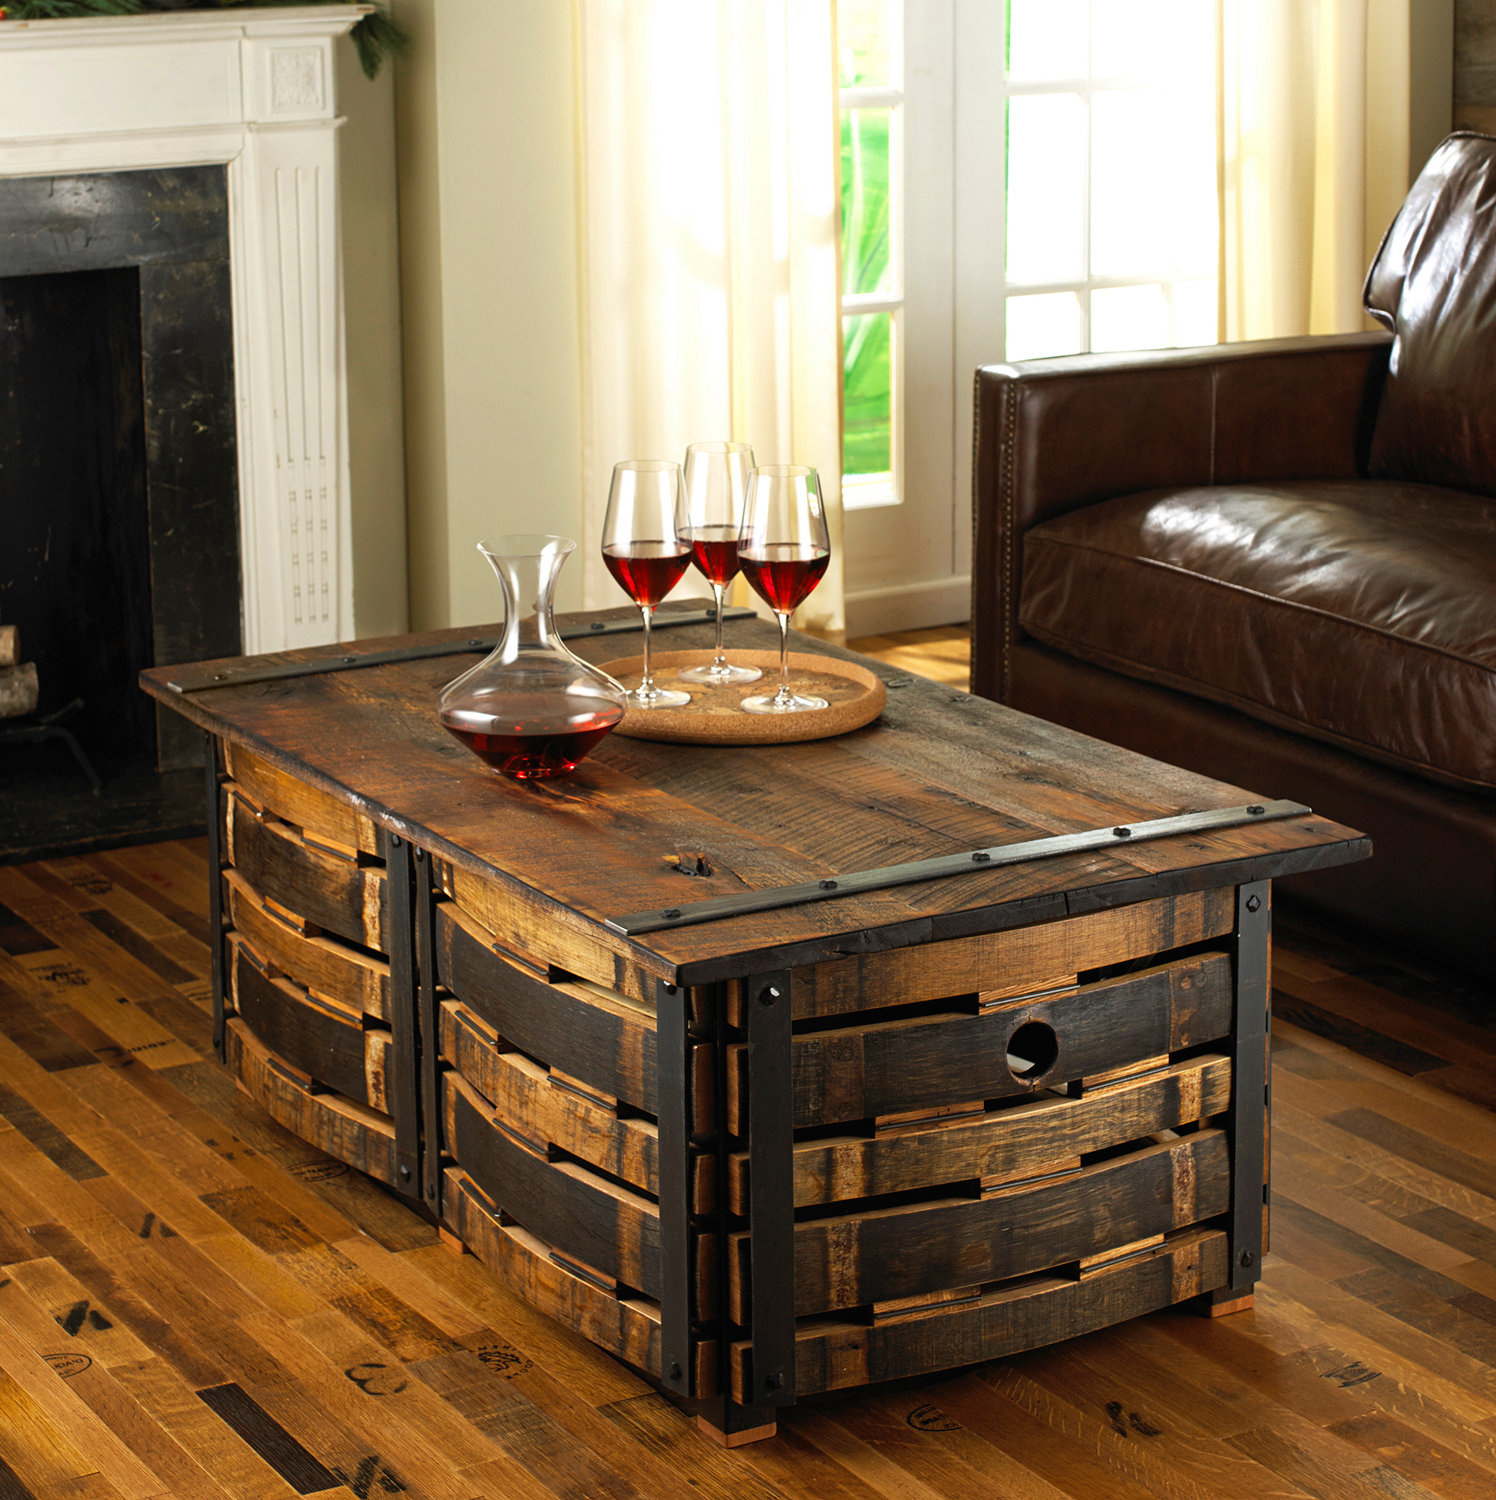 Coffee Tables Under Reclaimed Wood Raysa House - Coffee table less than $50